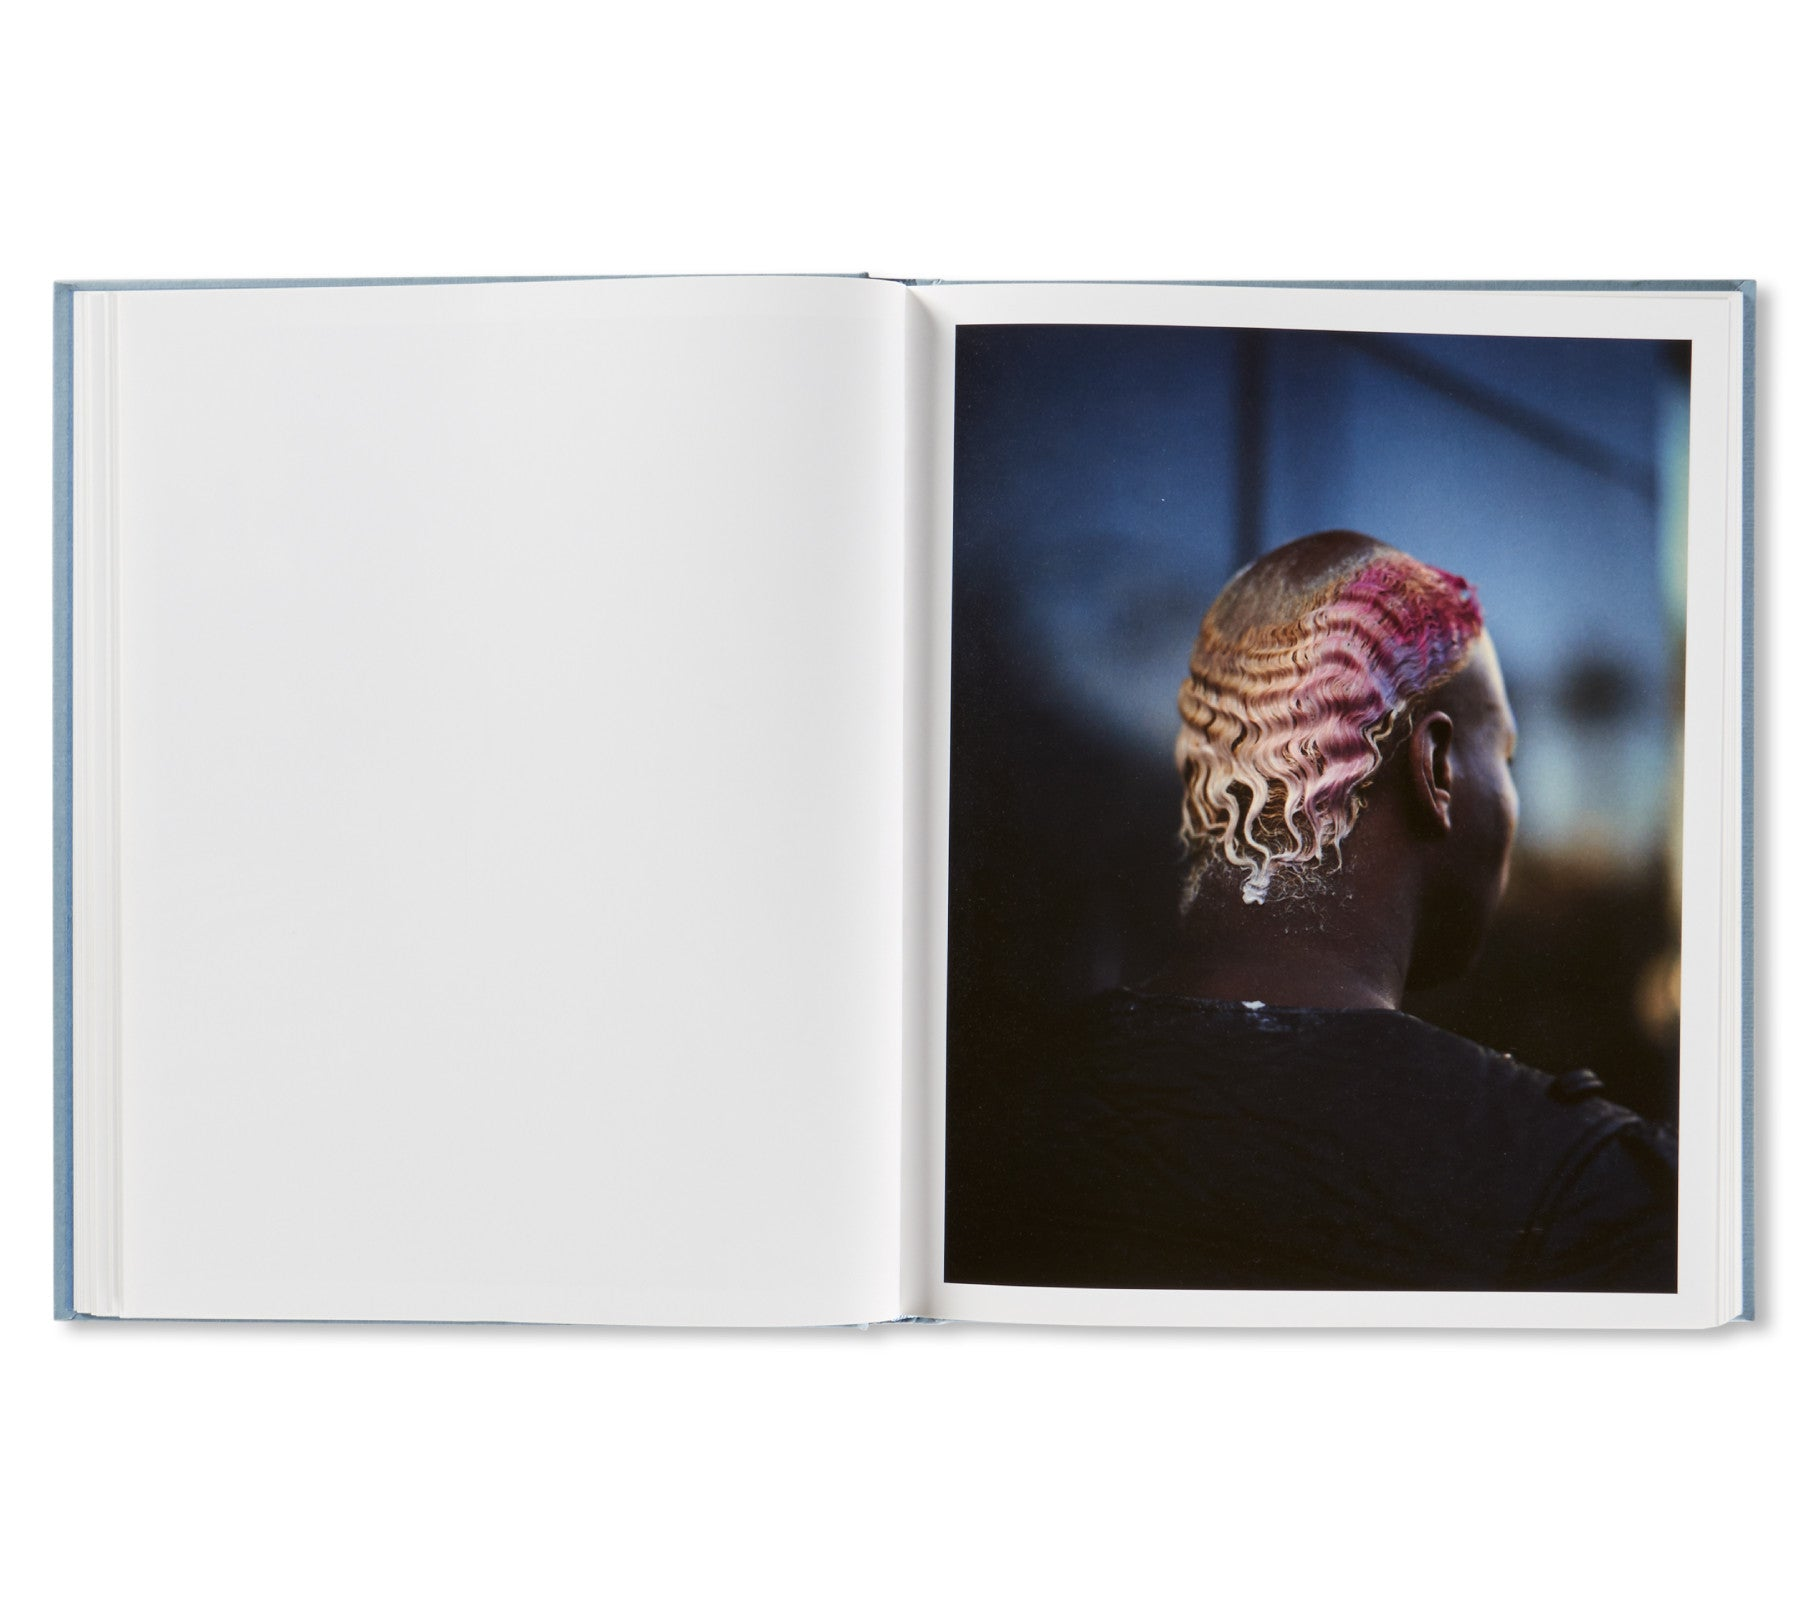 ZZYZX by Gregory Halpern [SPECIAL EDITION (HEAD)]